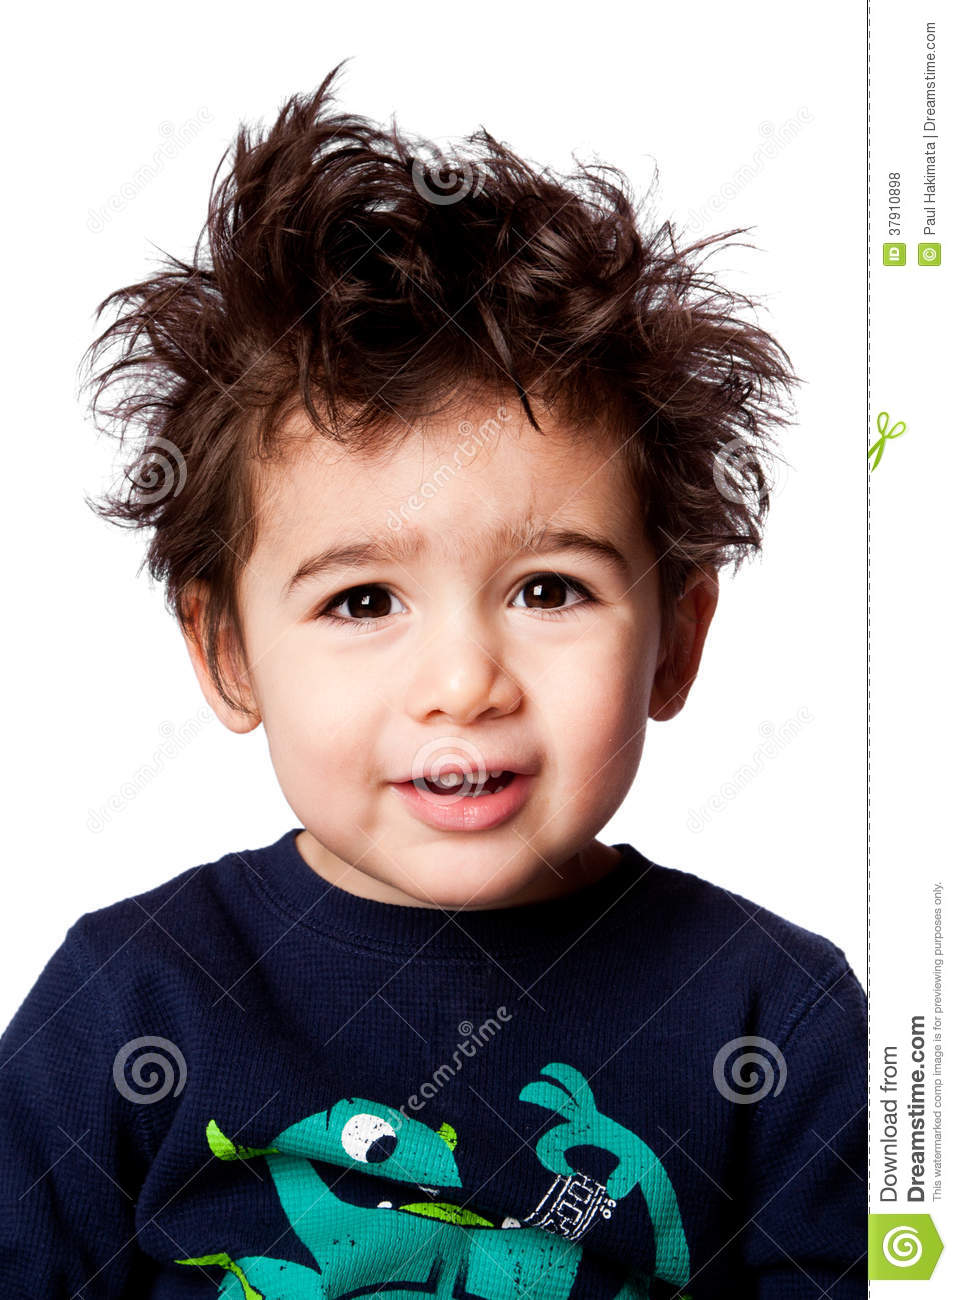 Cute Adorable Toddler Expression Stock Photo Image Of